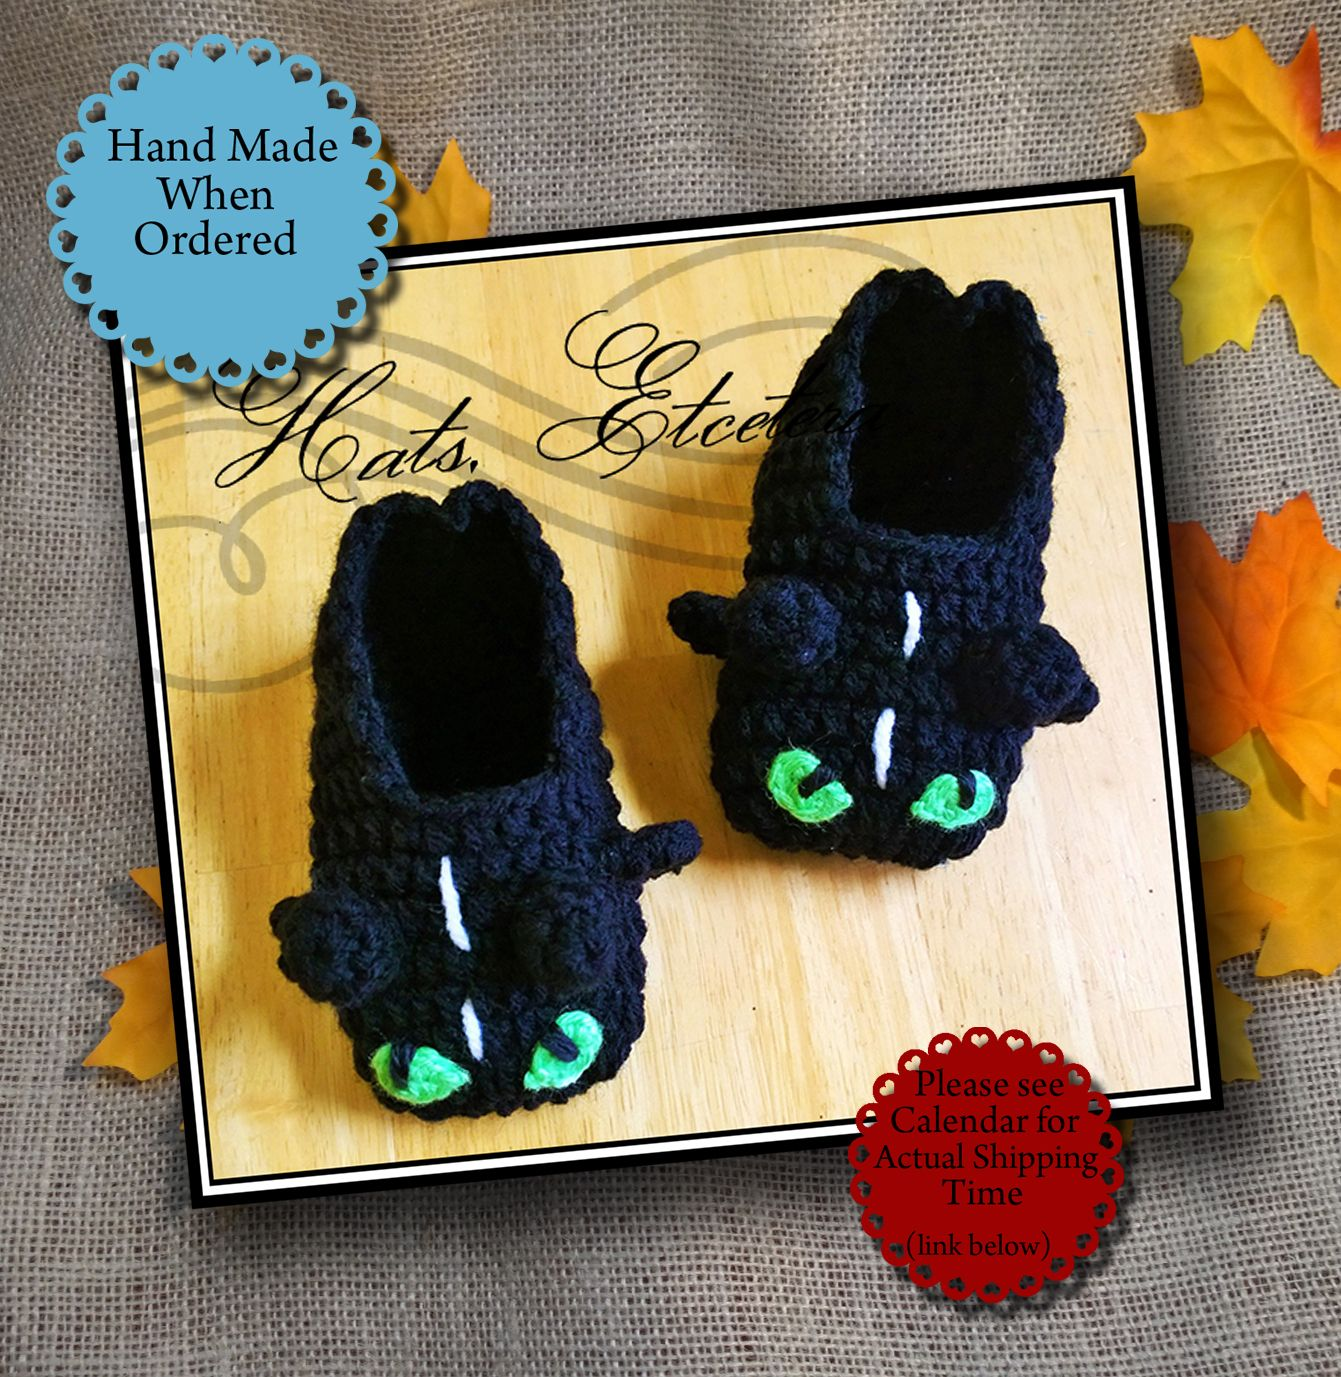 Toothless slippers inspired by how to train your dragon 18 email toothless slippers inspired by how to train your dragon 18 email tlgard27gmail ccuart Image collections